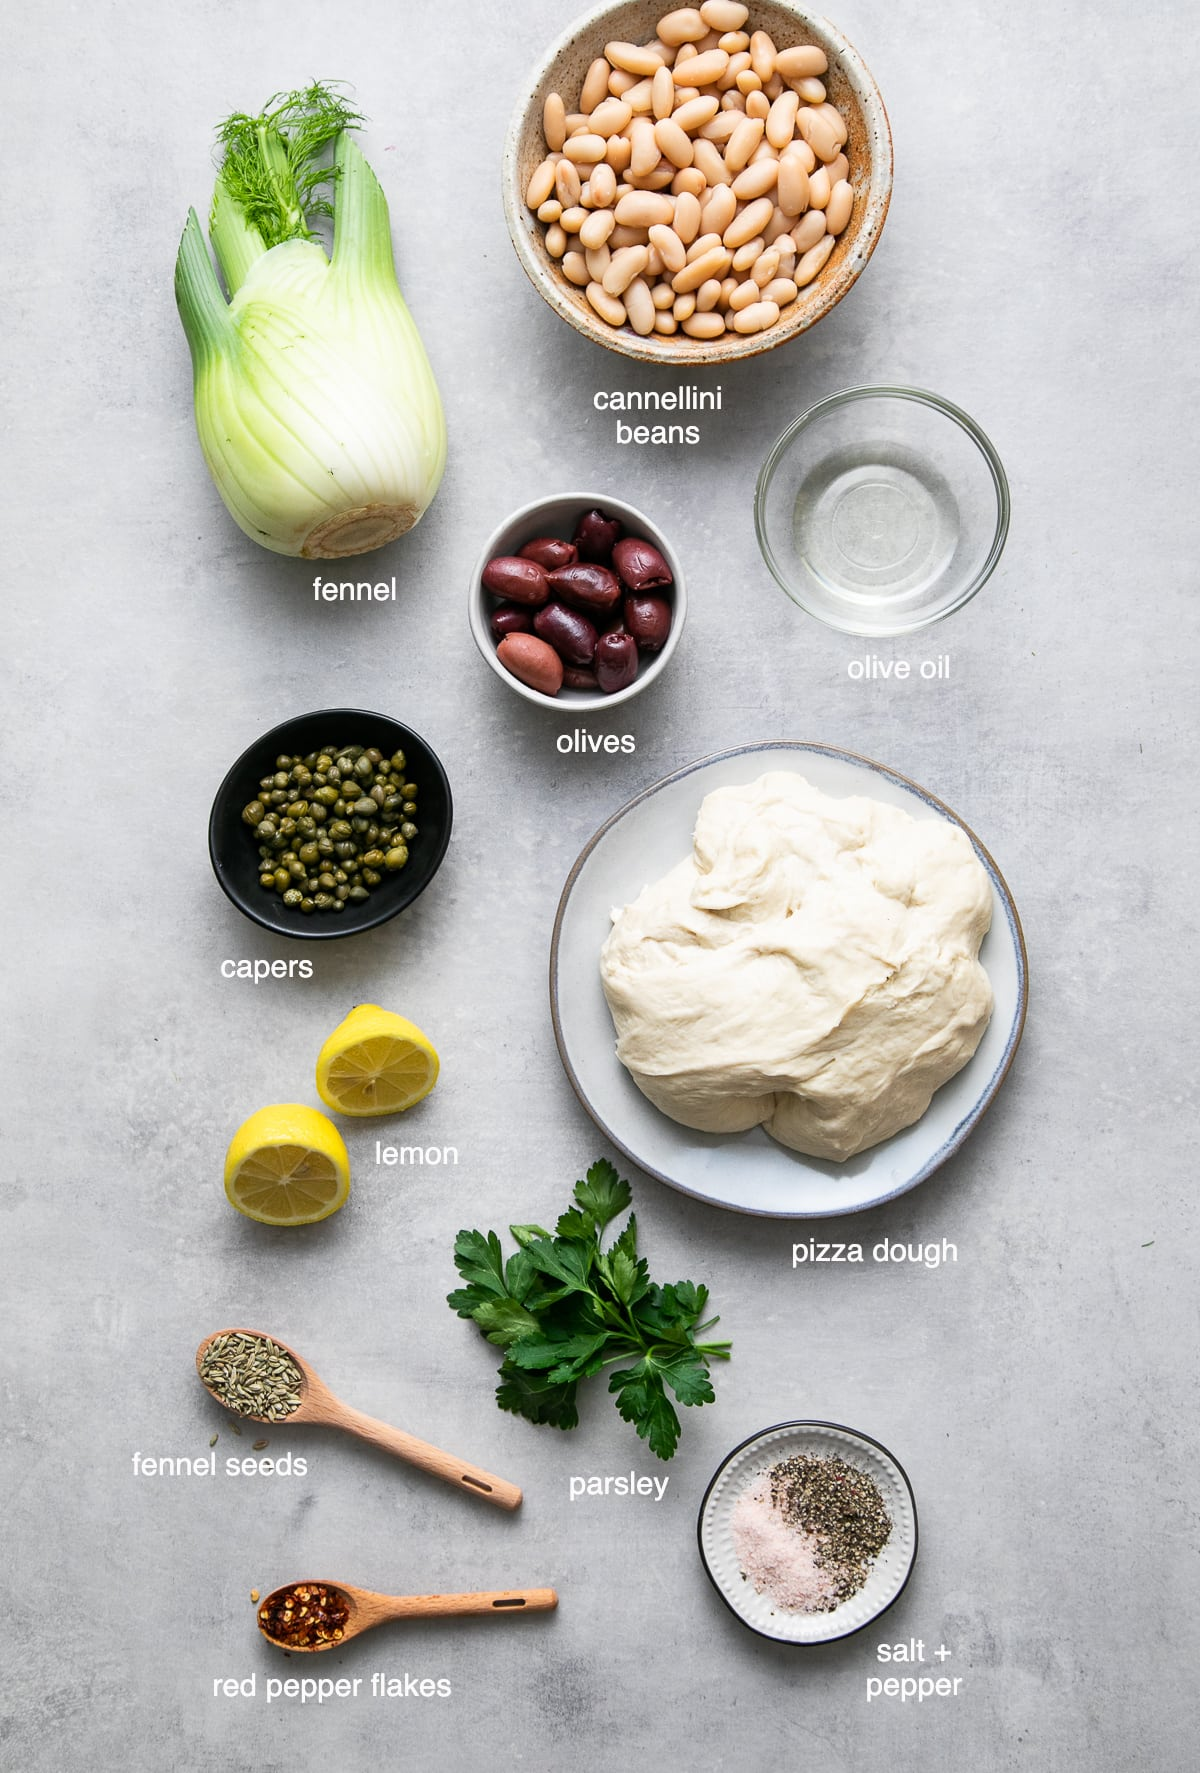 top down view of ingredients used to make cannellini fennel flatbread.